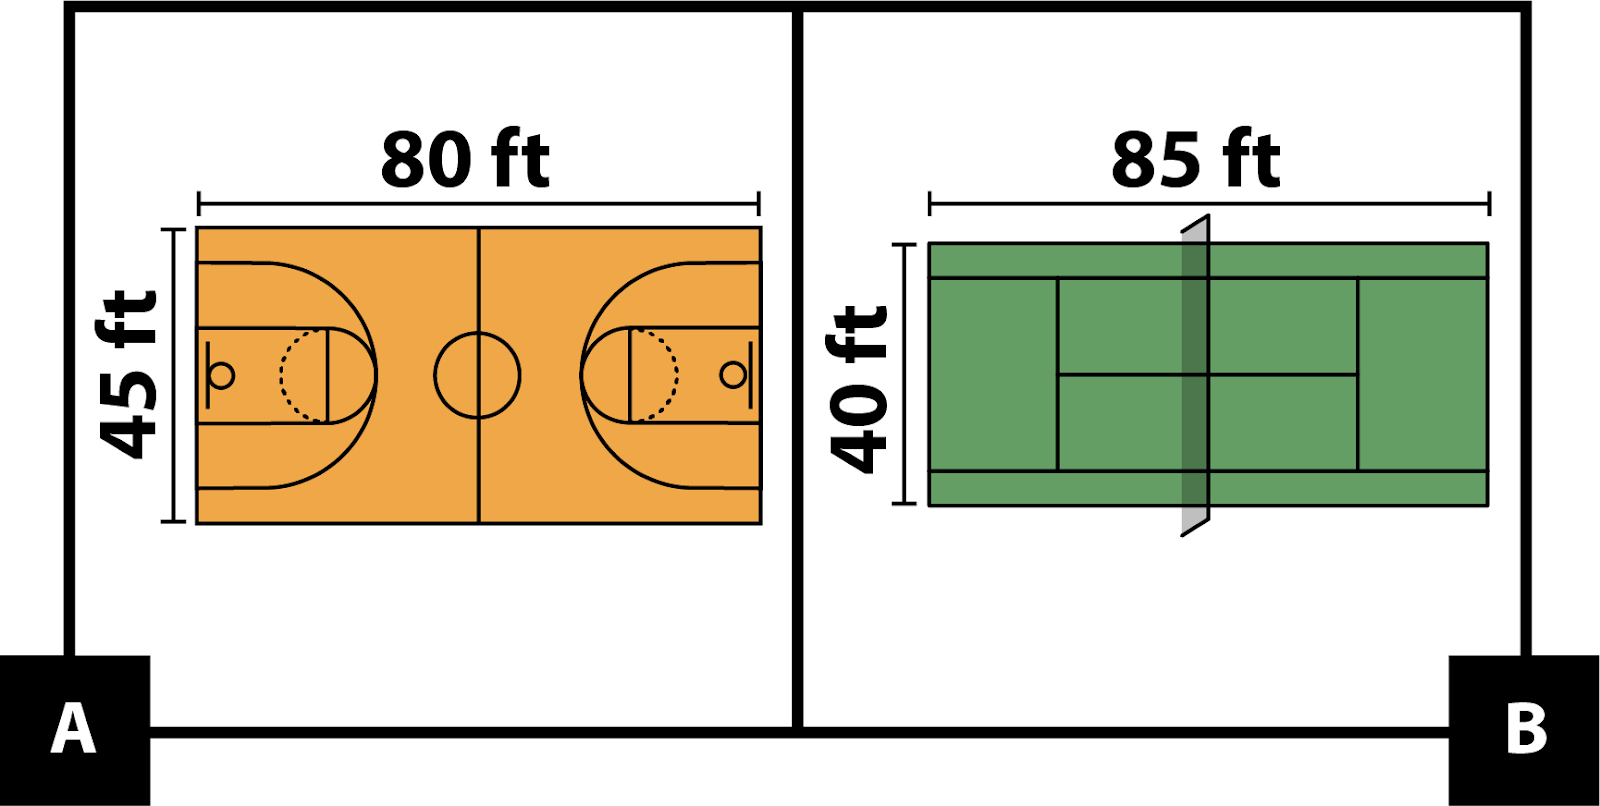 A: A basketball court with the dimensions of 45 feet by 80 feet. B: A tennis court with the dimensions of 40 feet by 85 feet.